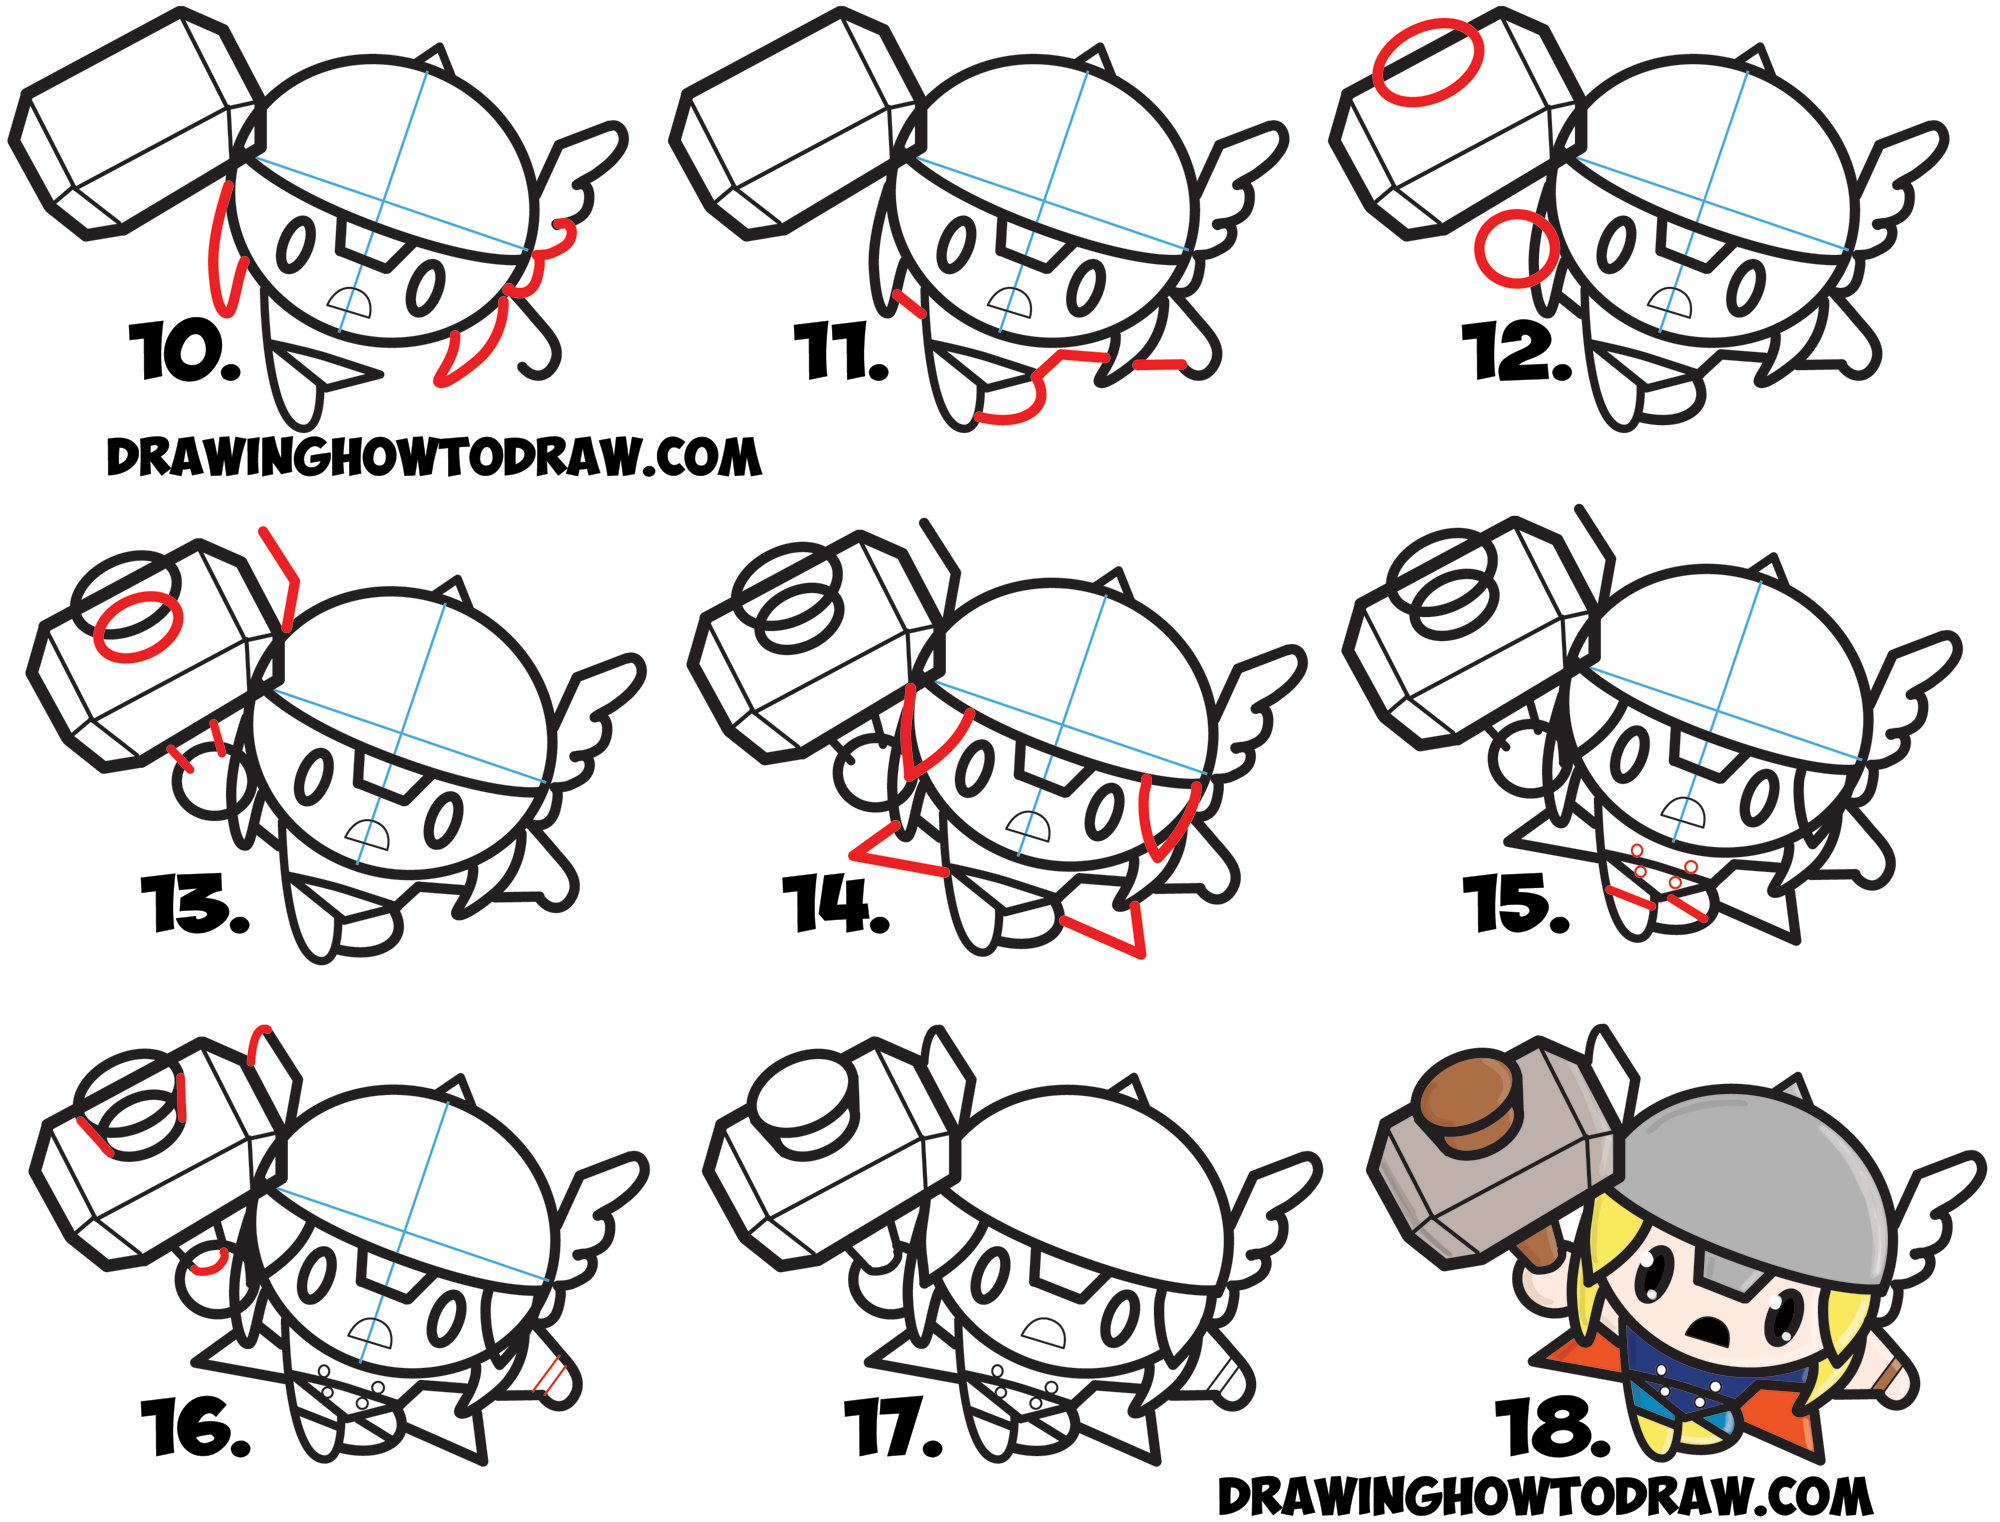 Learn How to Draw Cute Chibi Kawaii Thor from Marvel Comics in Simple Step by Step Art Lesson for Kids